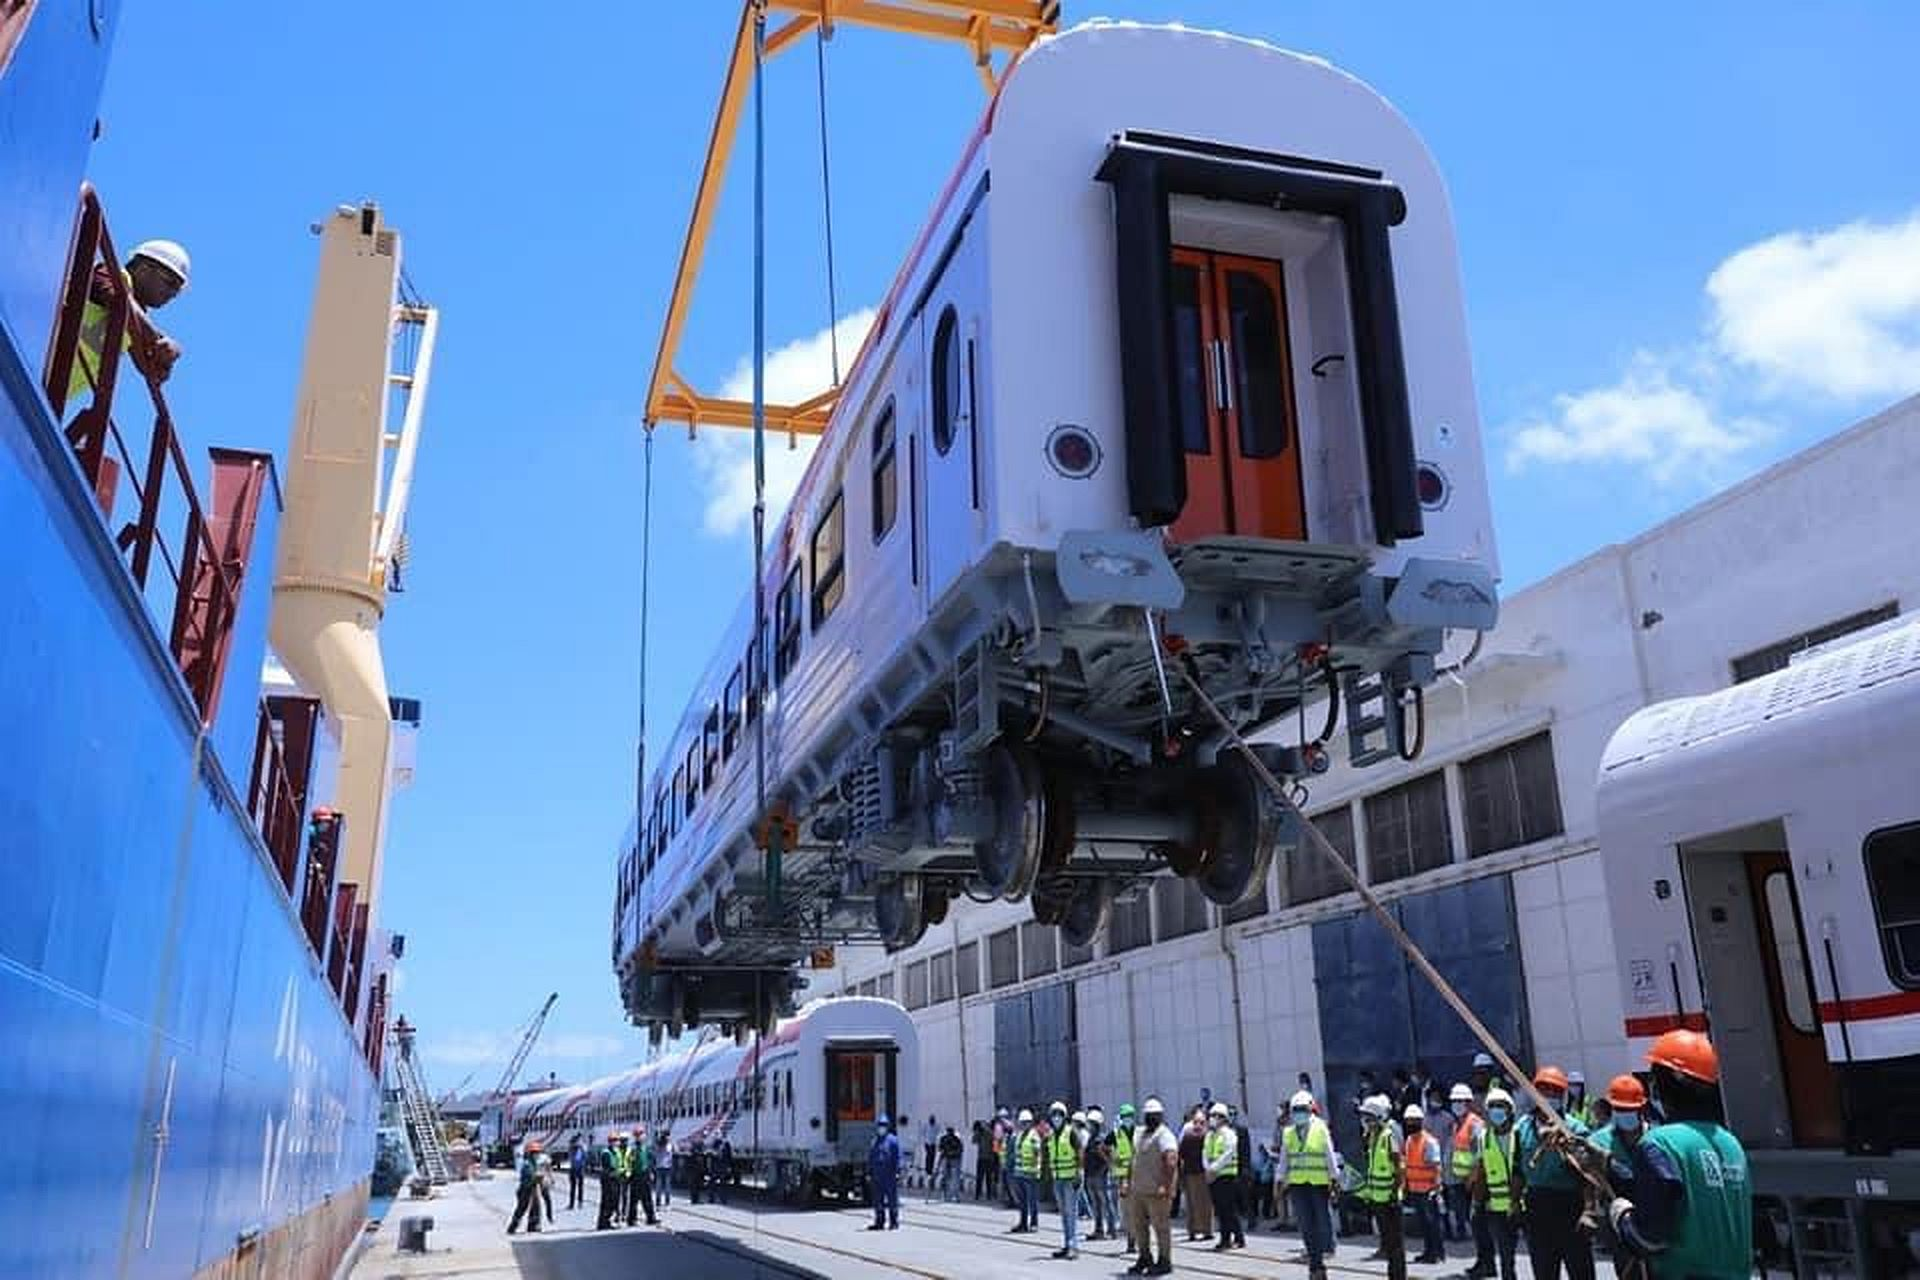 TMH passenger coach arrives in Alexandria